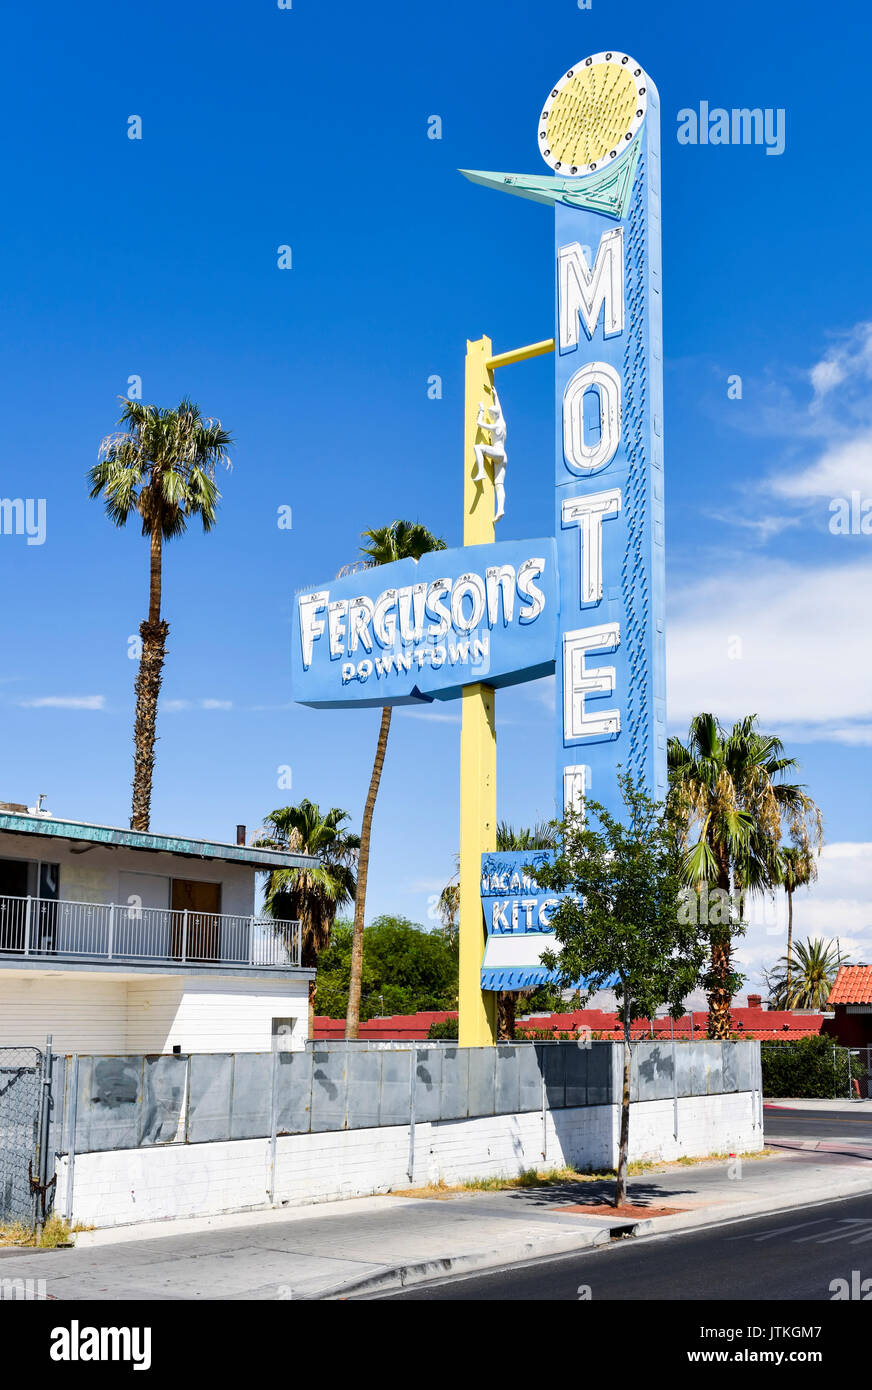 Fergusons Downtown Motel, Las Vegas, Nevada - Stock Image